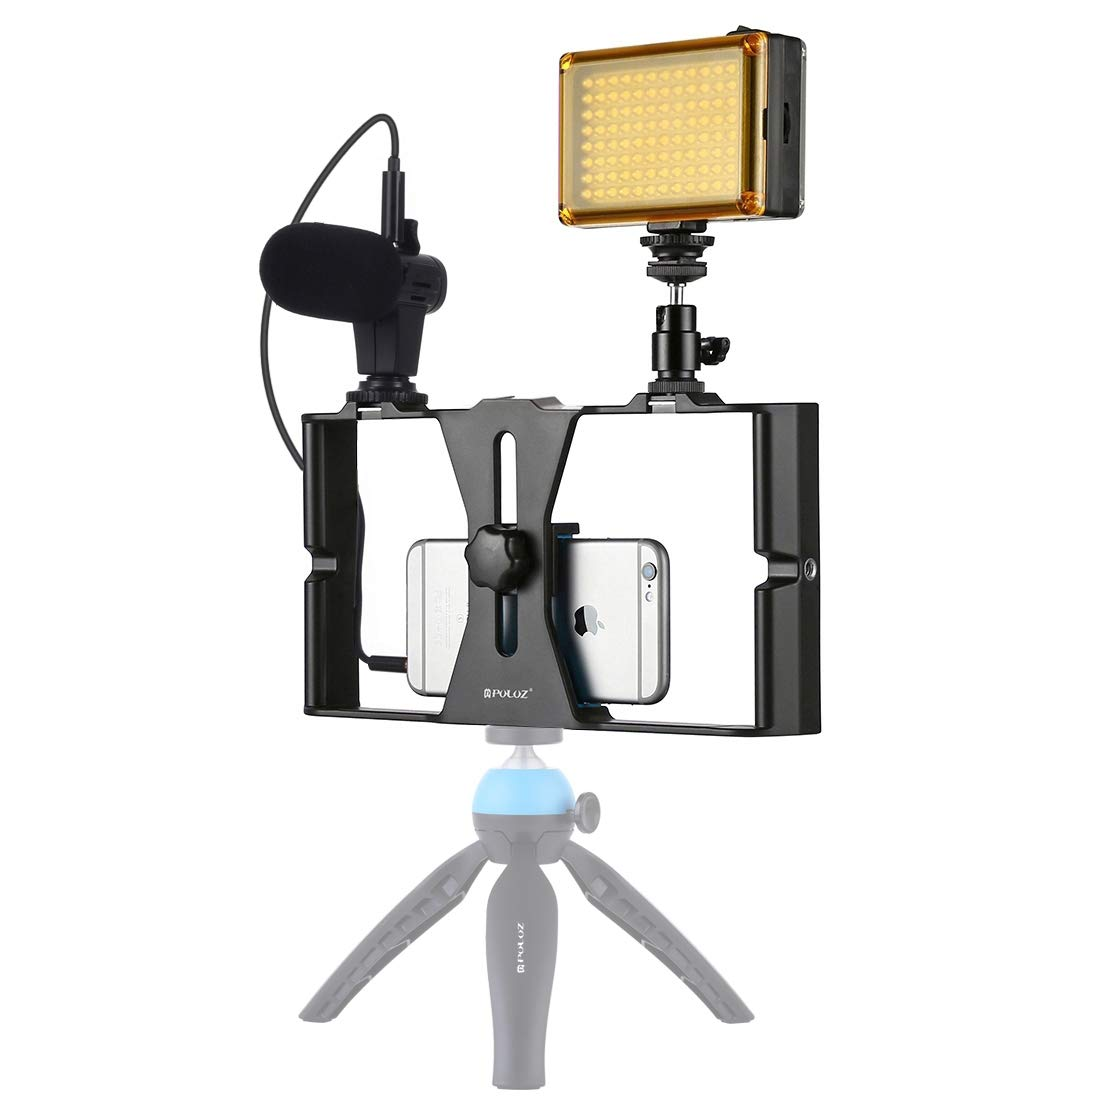 3 in 1 Vlogging Live Broadcast LED Selfie Light Smartphone Video Rig Kits with Microphone + Cold Shoe Tripod Head for iPhone, Galaxy, Huawei, Xiaomi, HTC, LG, Google, and Other Smartphones (Blue) Dura by CAOMING